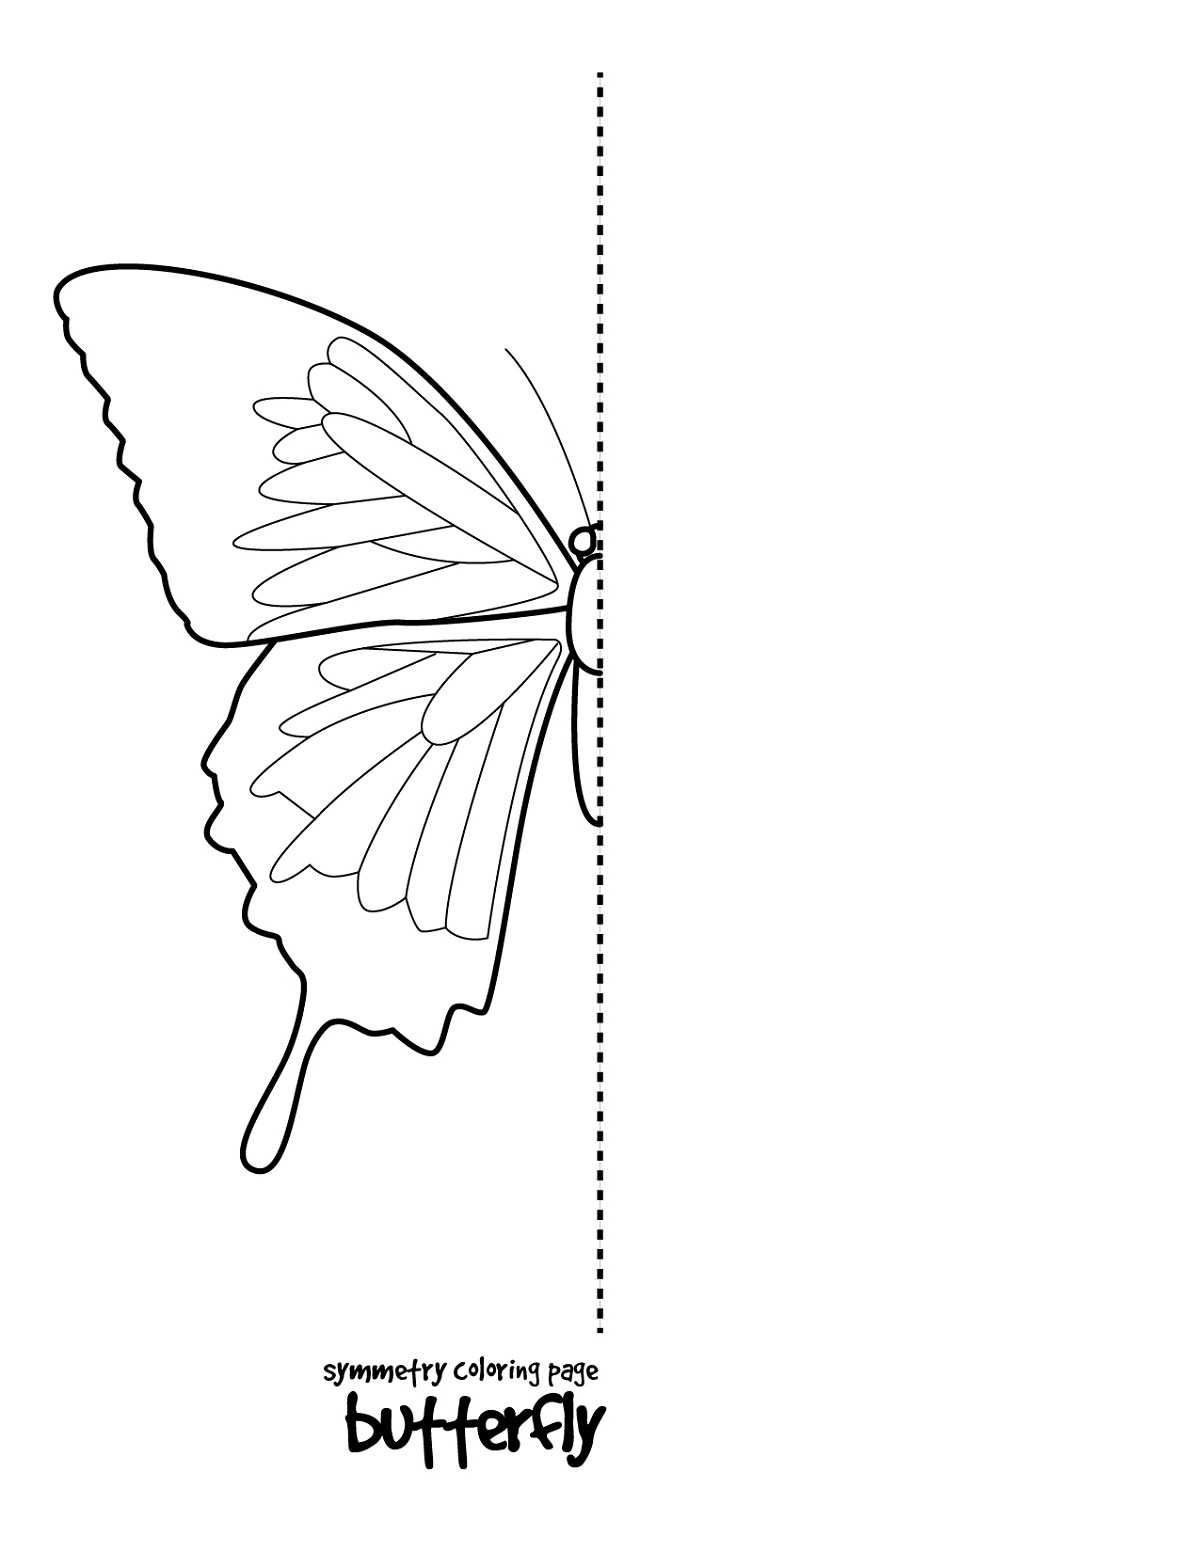 Drawing Sheets For Kids Butterfly K5 Worksheets